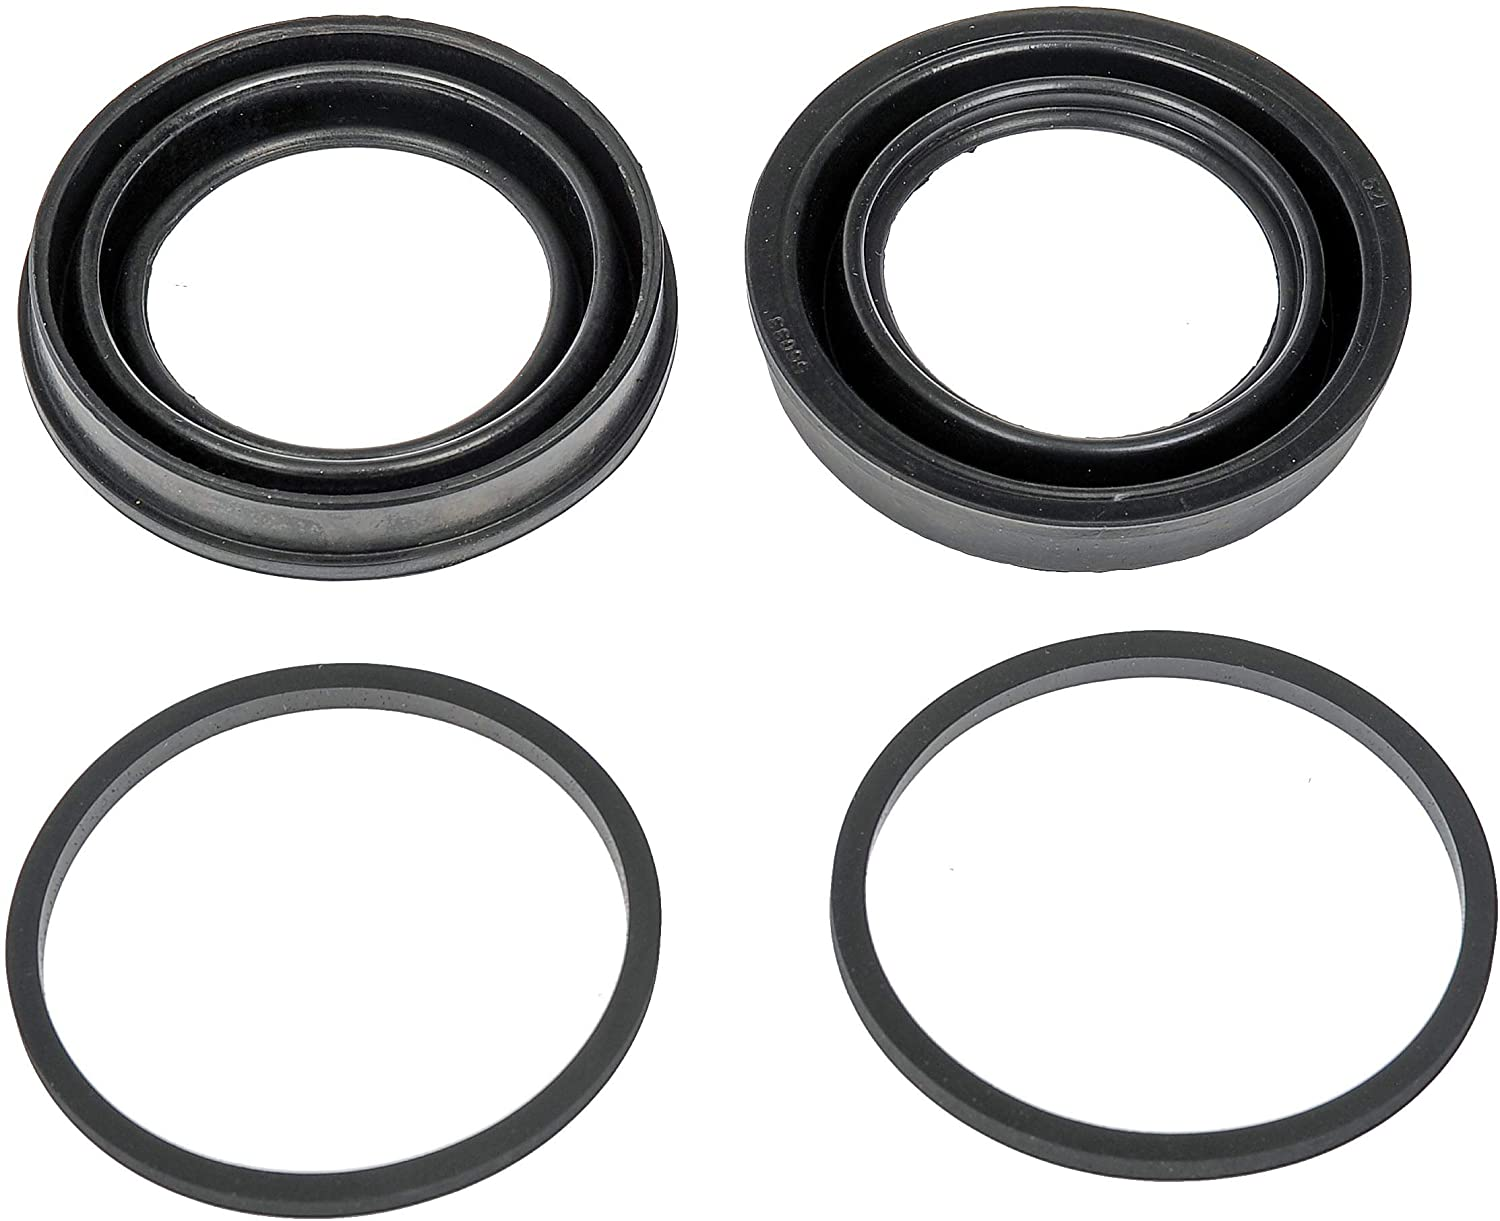 Dorman D670164 Disc Brake Caliper Repair Kit for Select Models